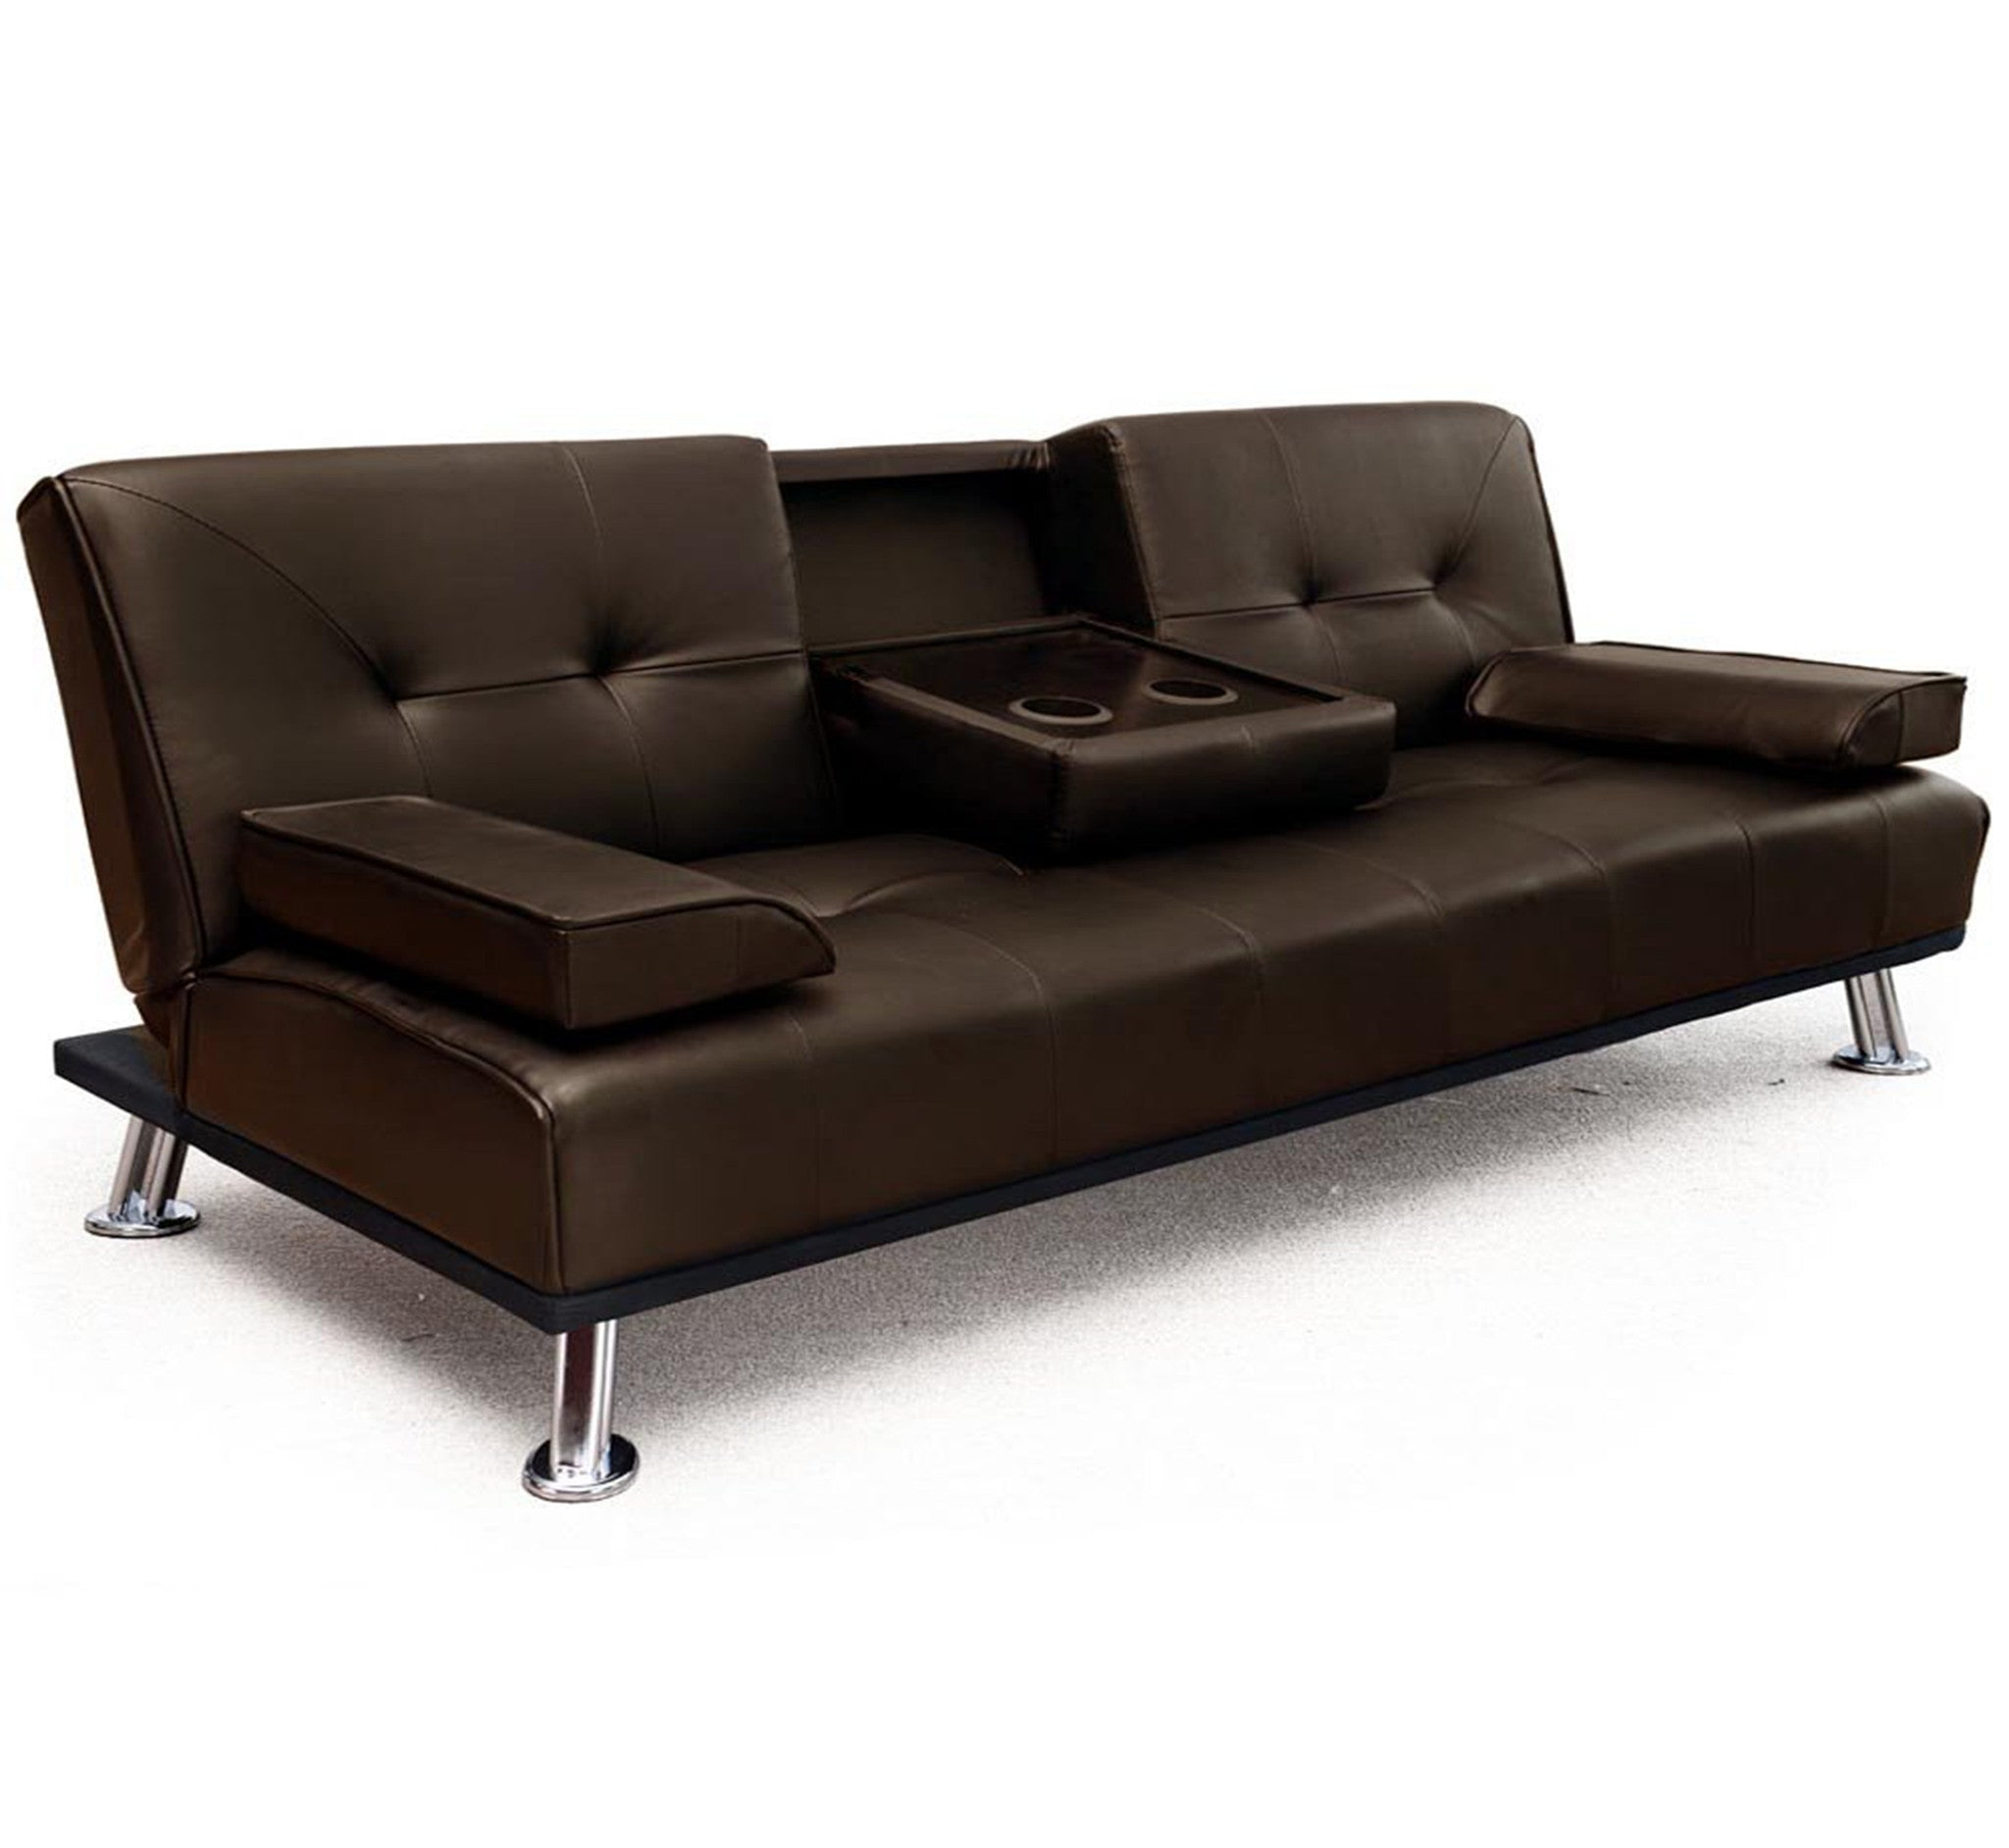 3 Seater Faux Leather Sofa Bed Fold Down Table Brown Hdaf